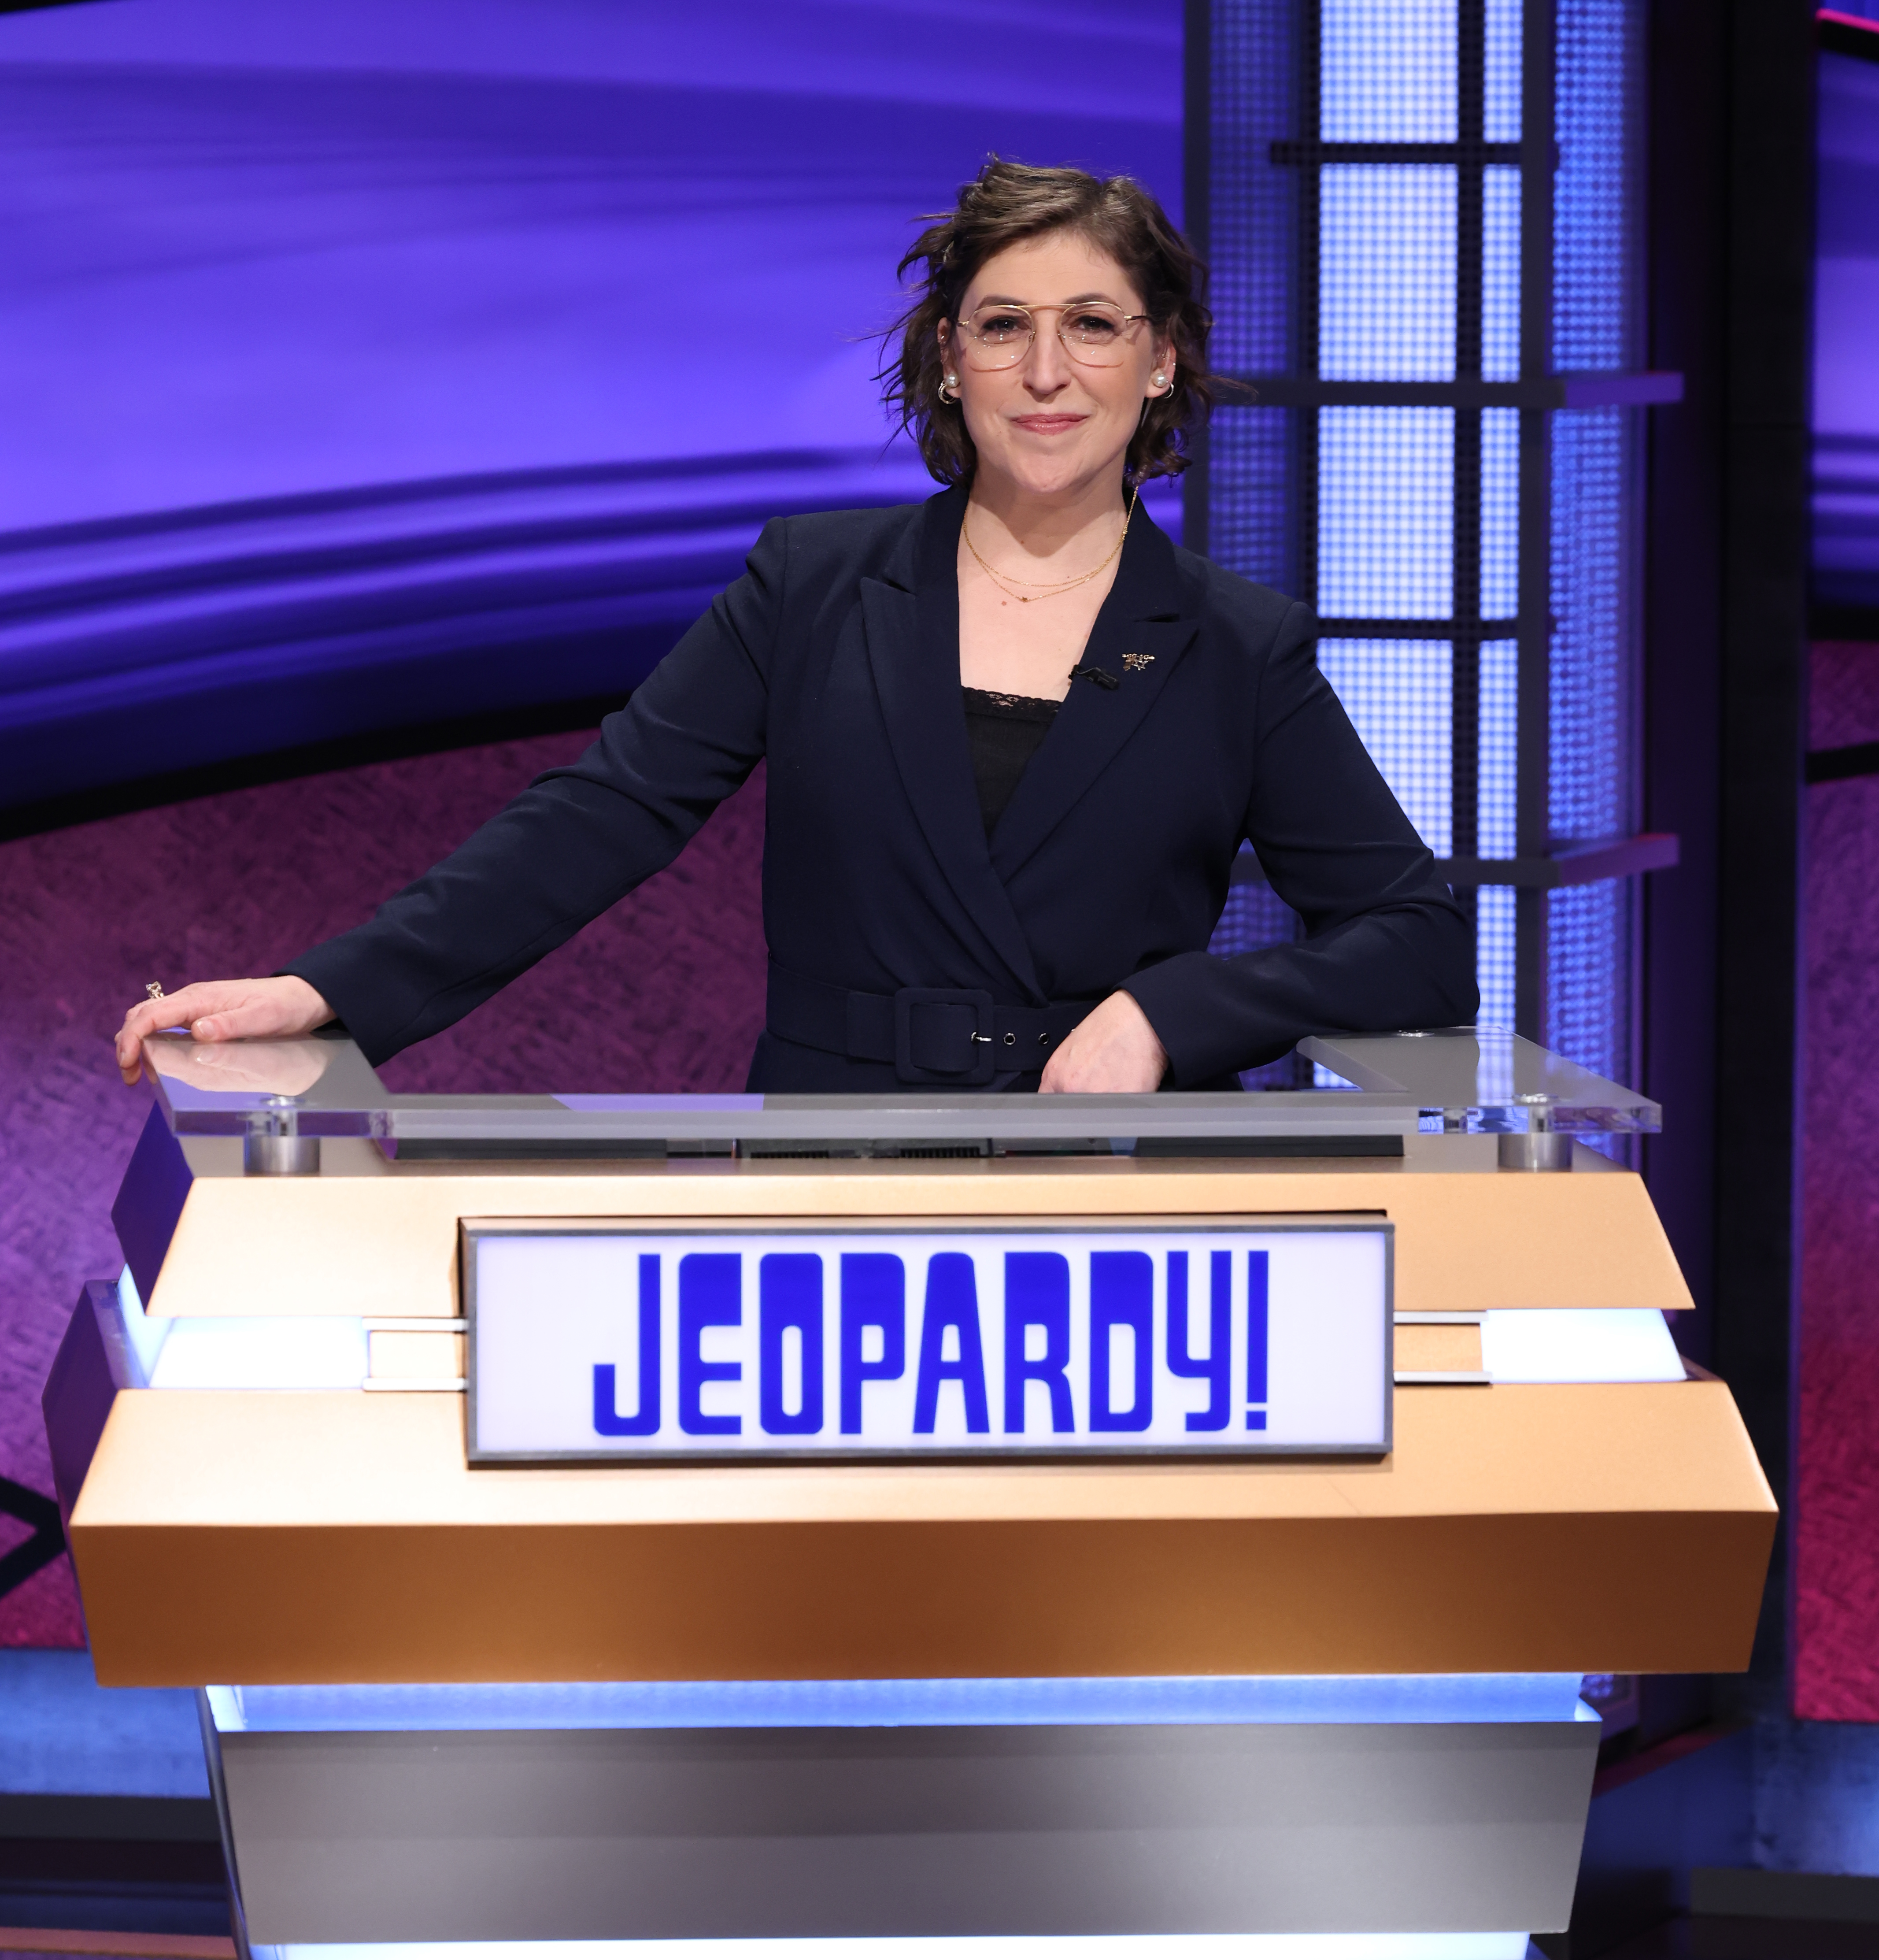 """Mayim Bialik on the set of """"Jeopardy!"""""""